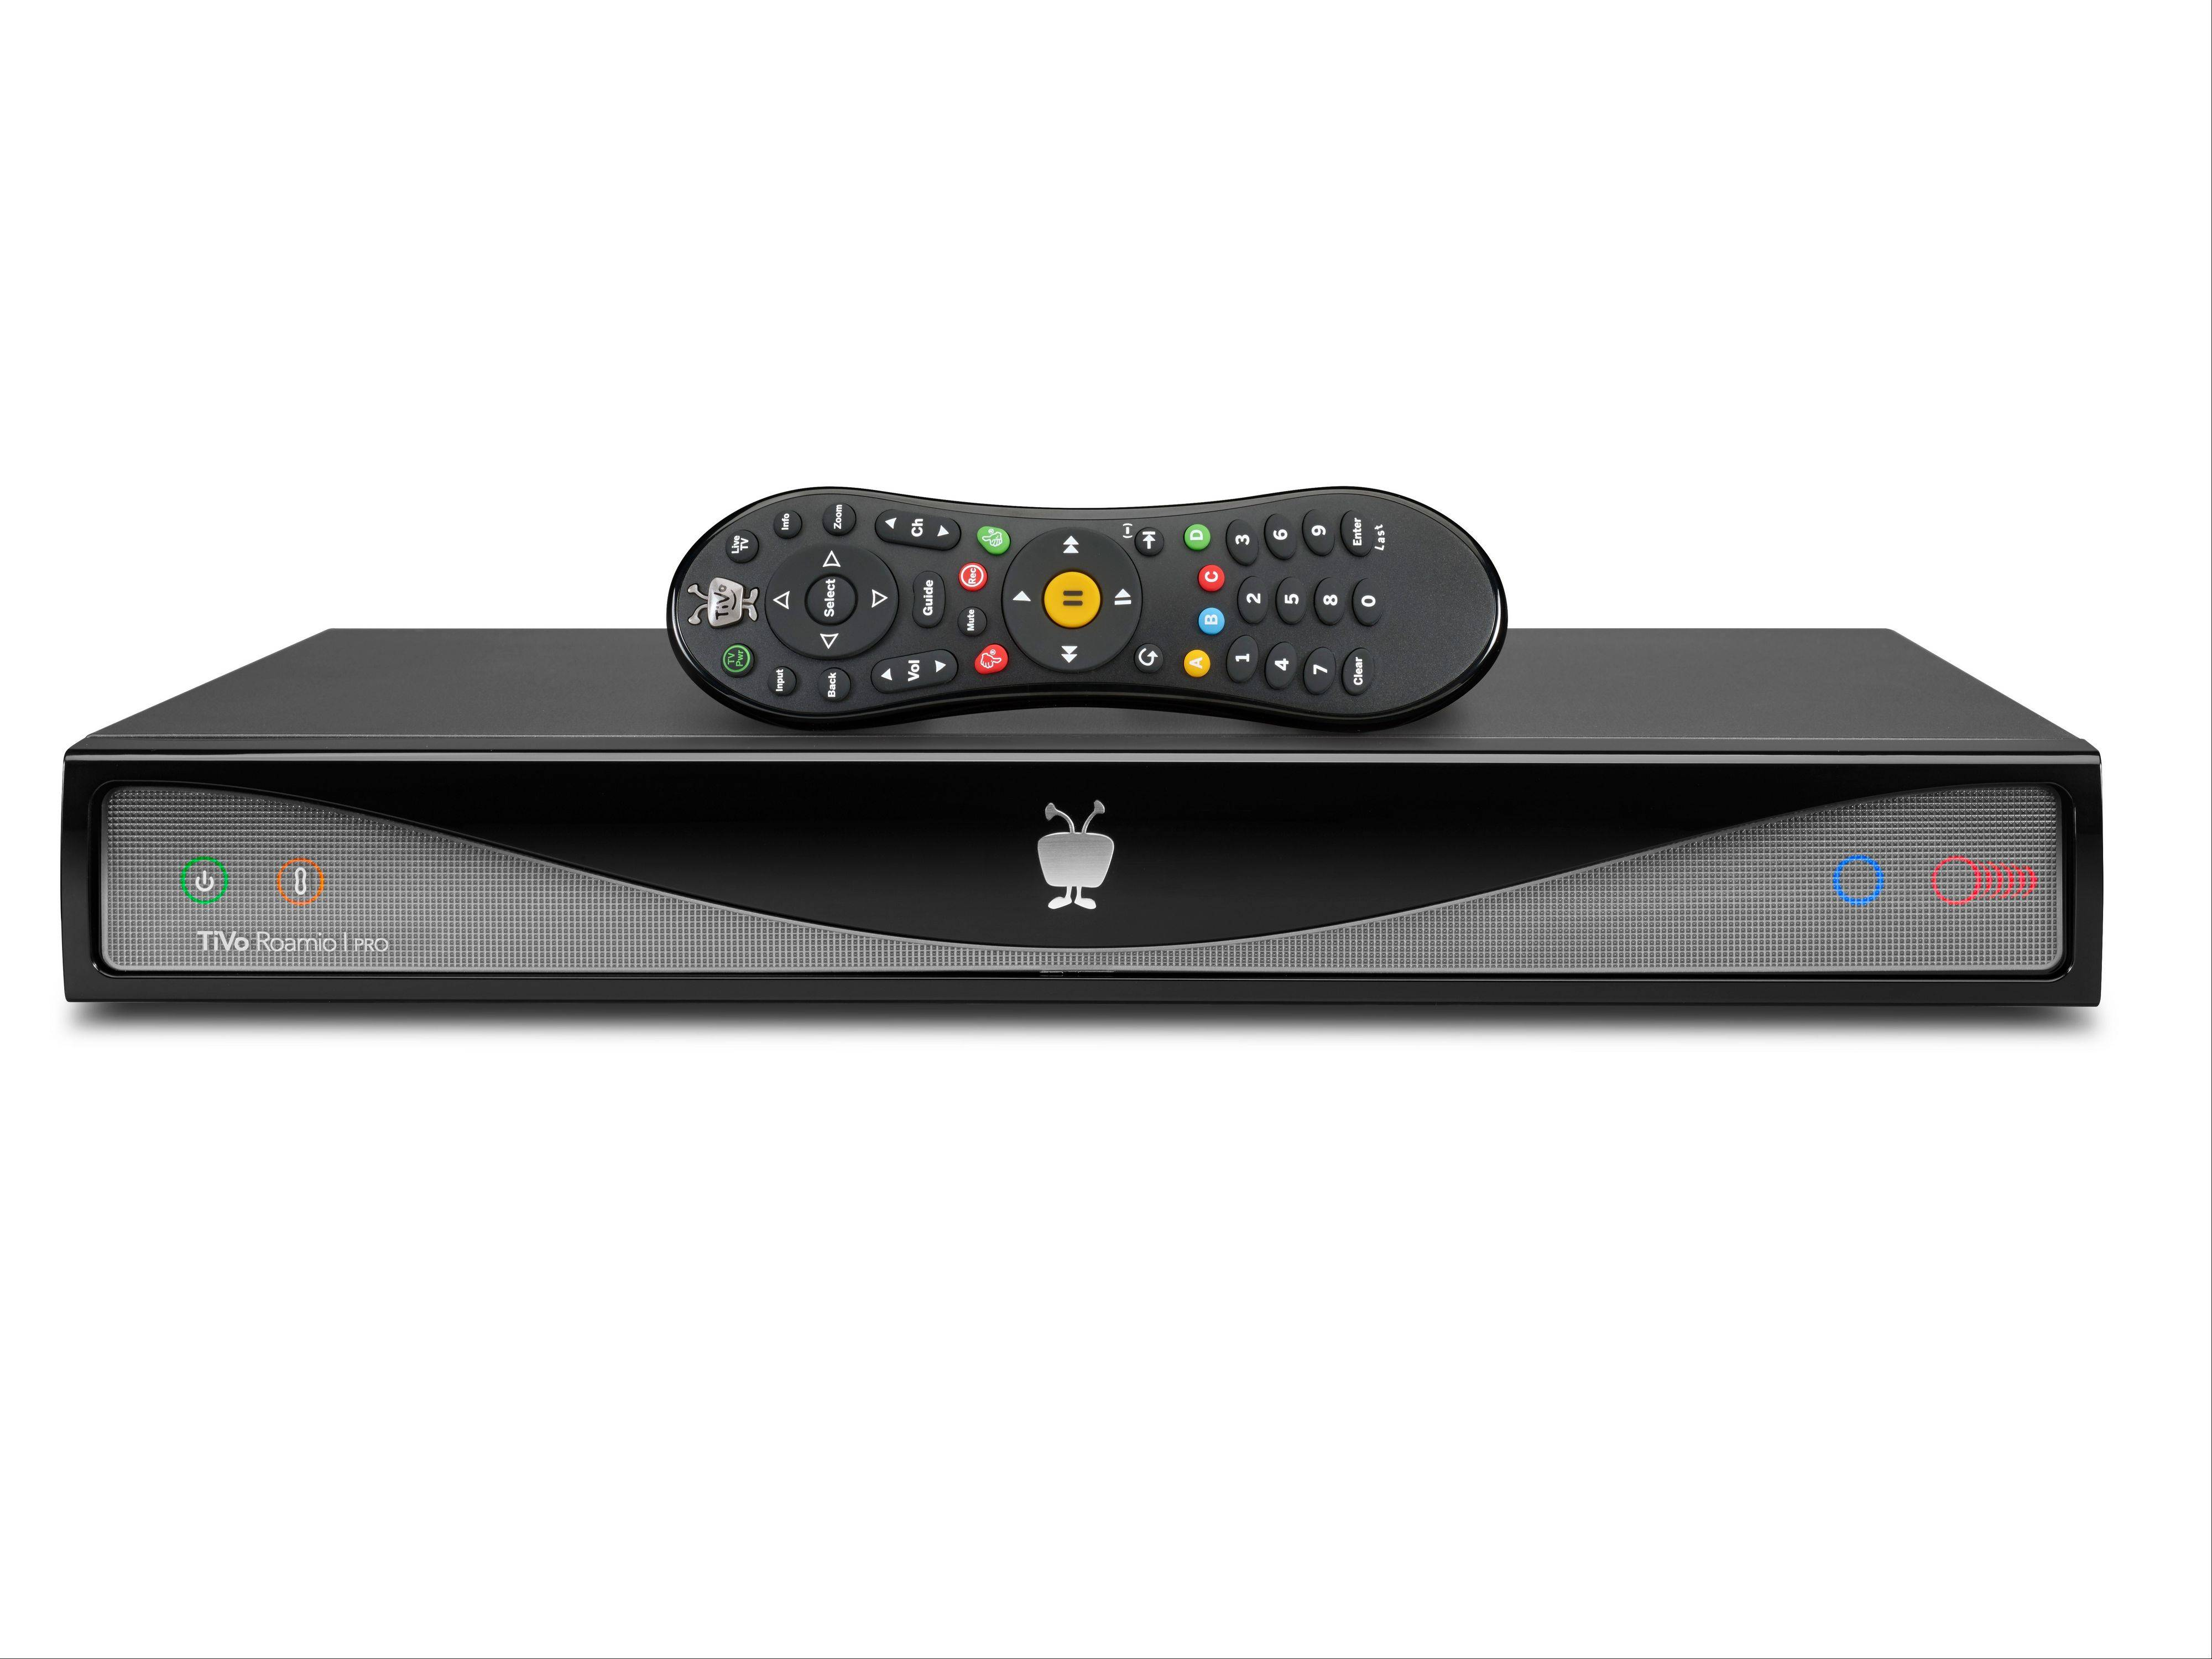 TiVo Inc. announced a new line of digital video recorders to give television viewers more control over what they watch on traditional channels and over the Internet.